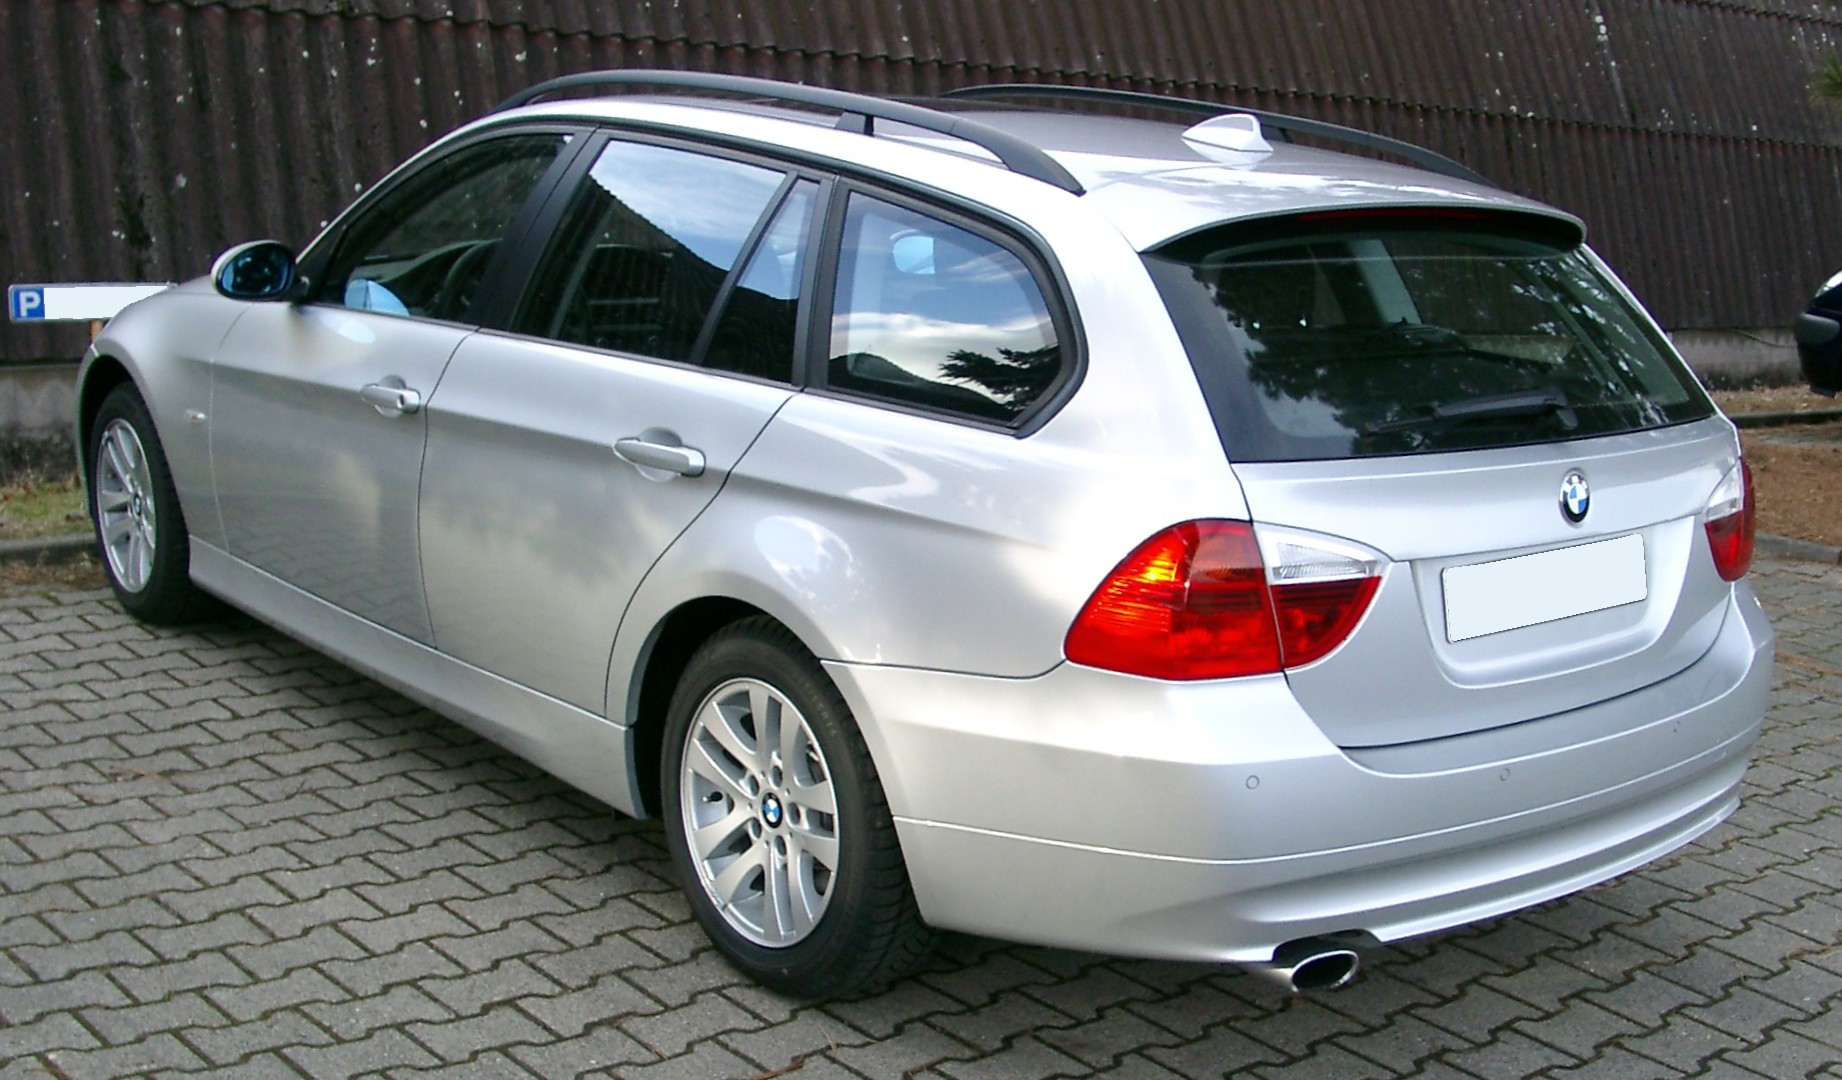 Bmw E90 Wiki >> File:BMW E90 Touring rear 20080108.jpg - Wikimedia Commons